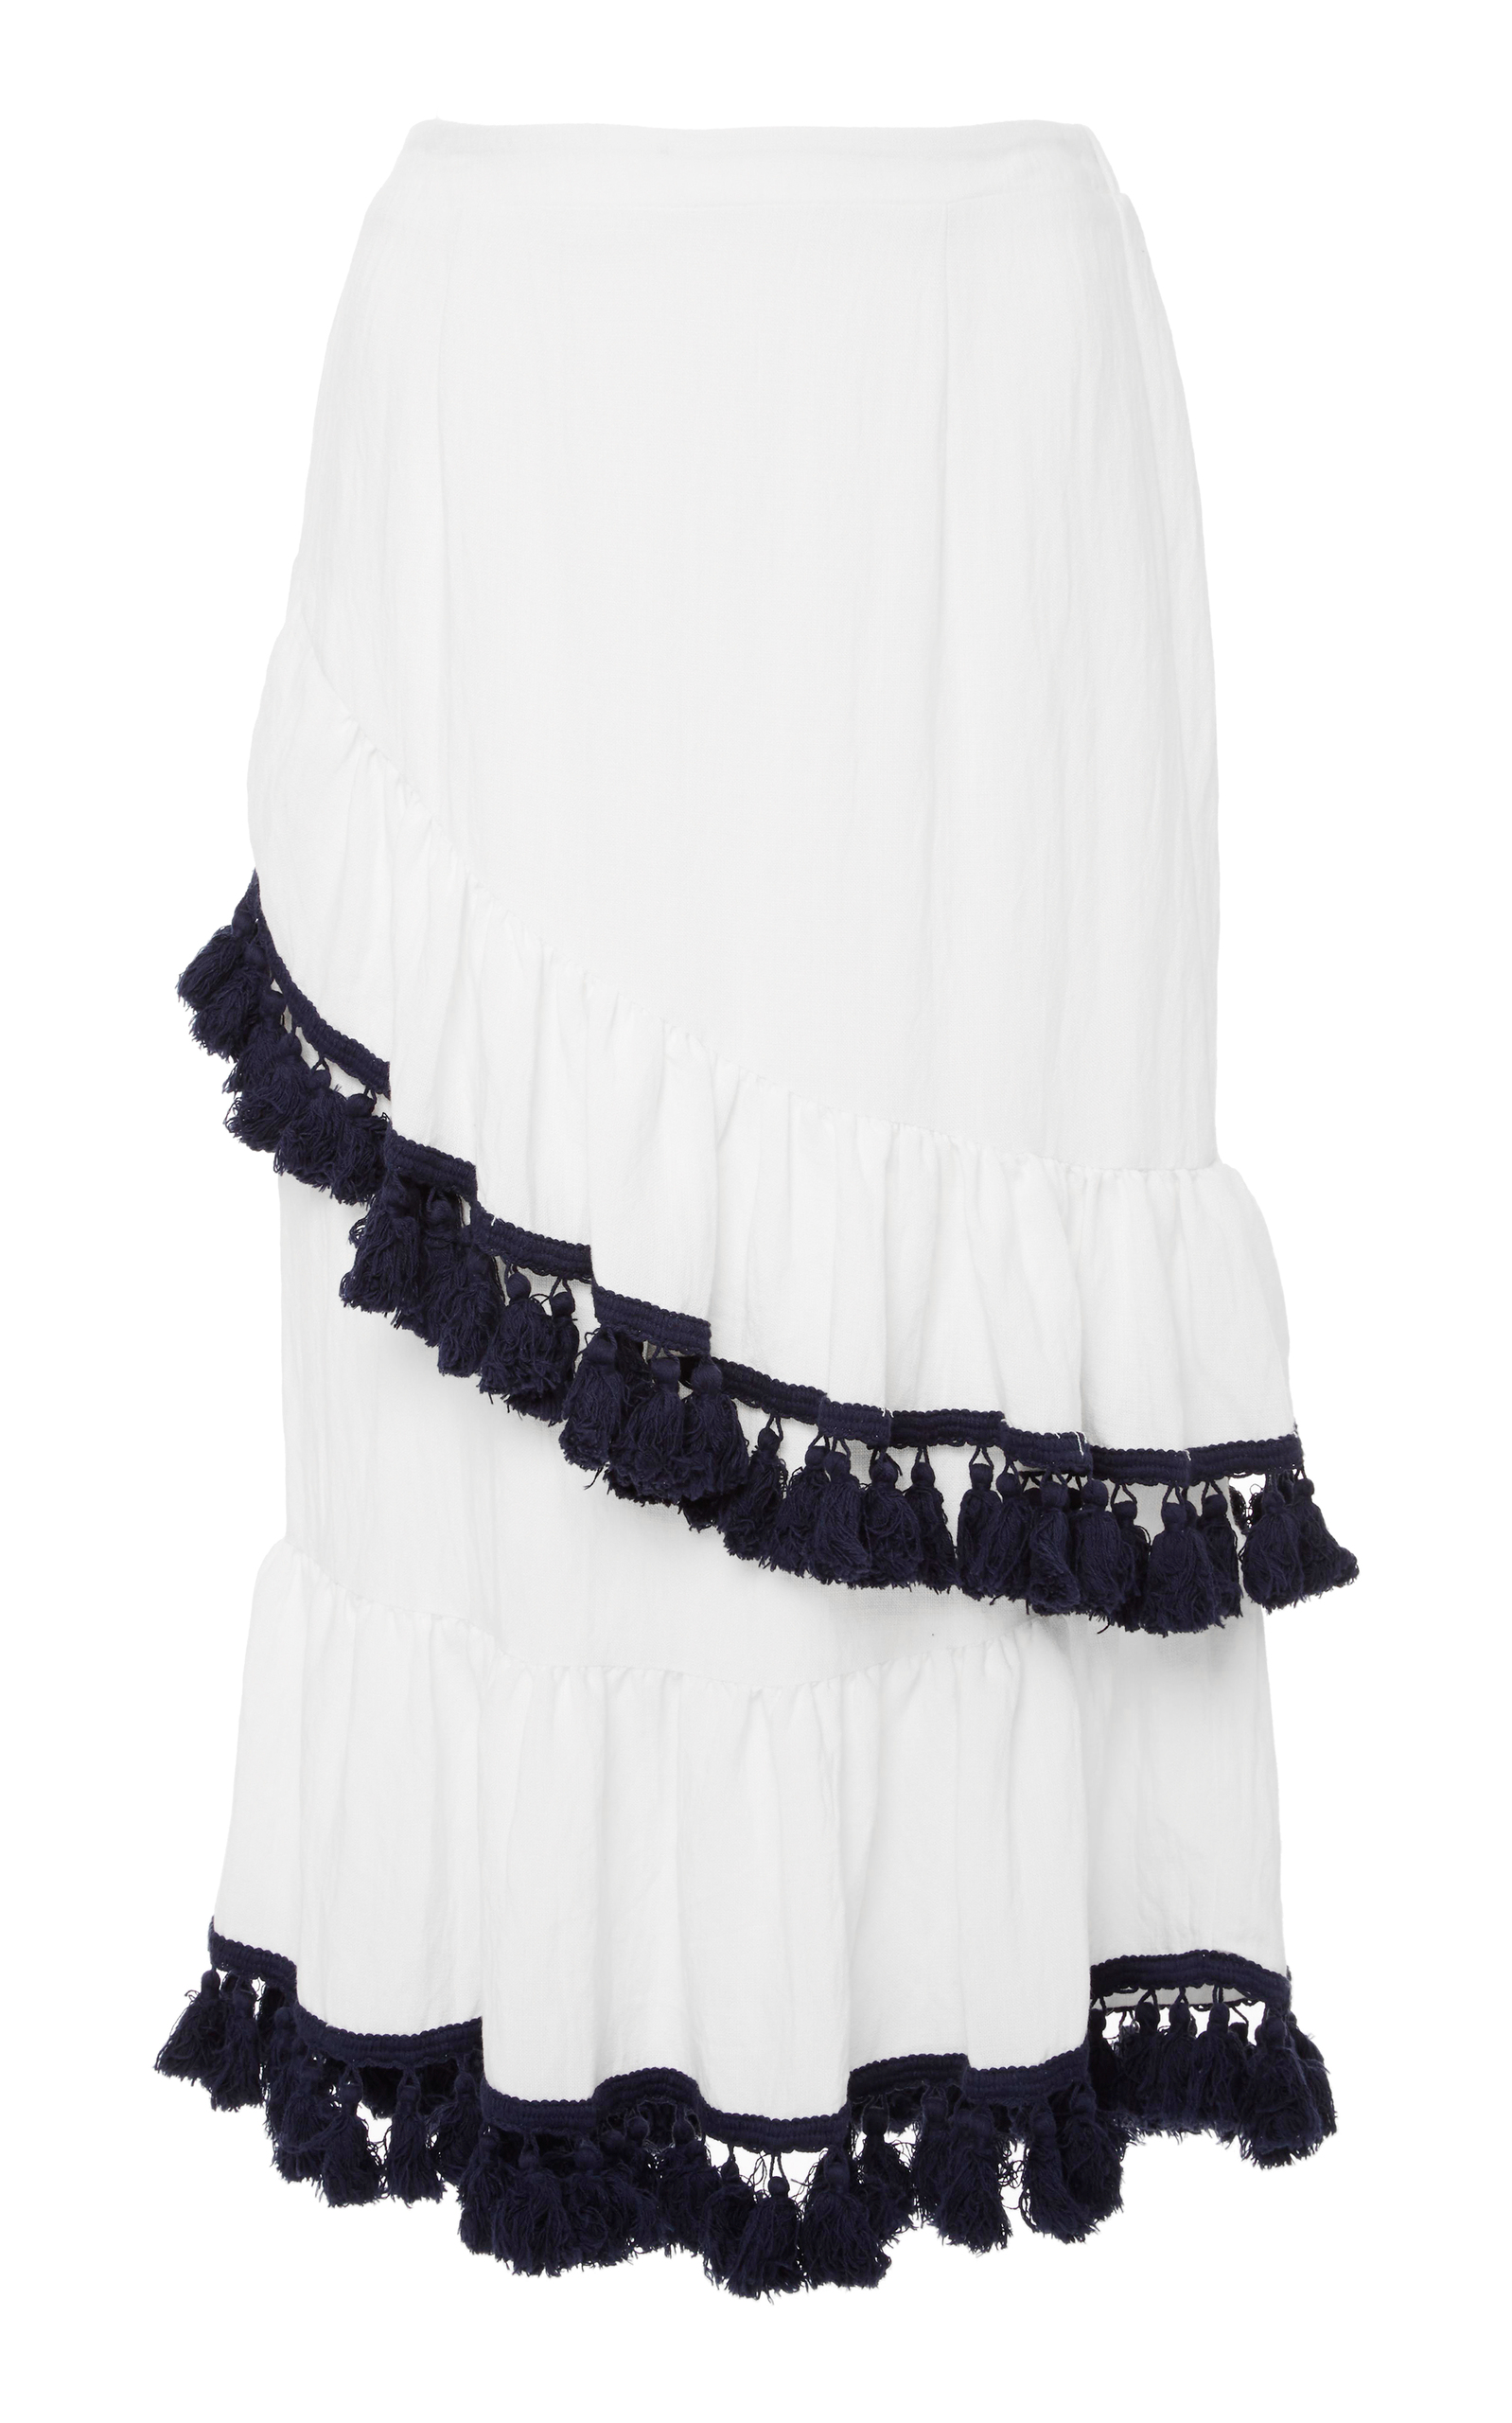 SUBOO Playa Frill Cotton-Blend Skirt in White